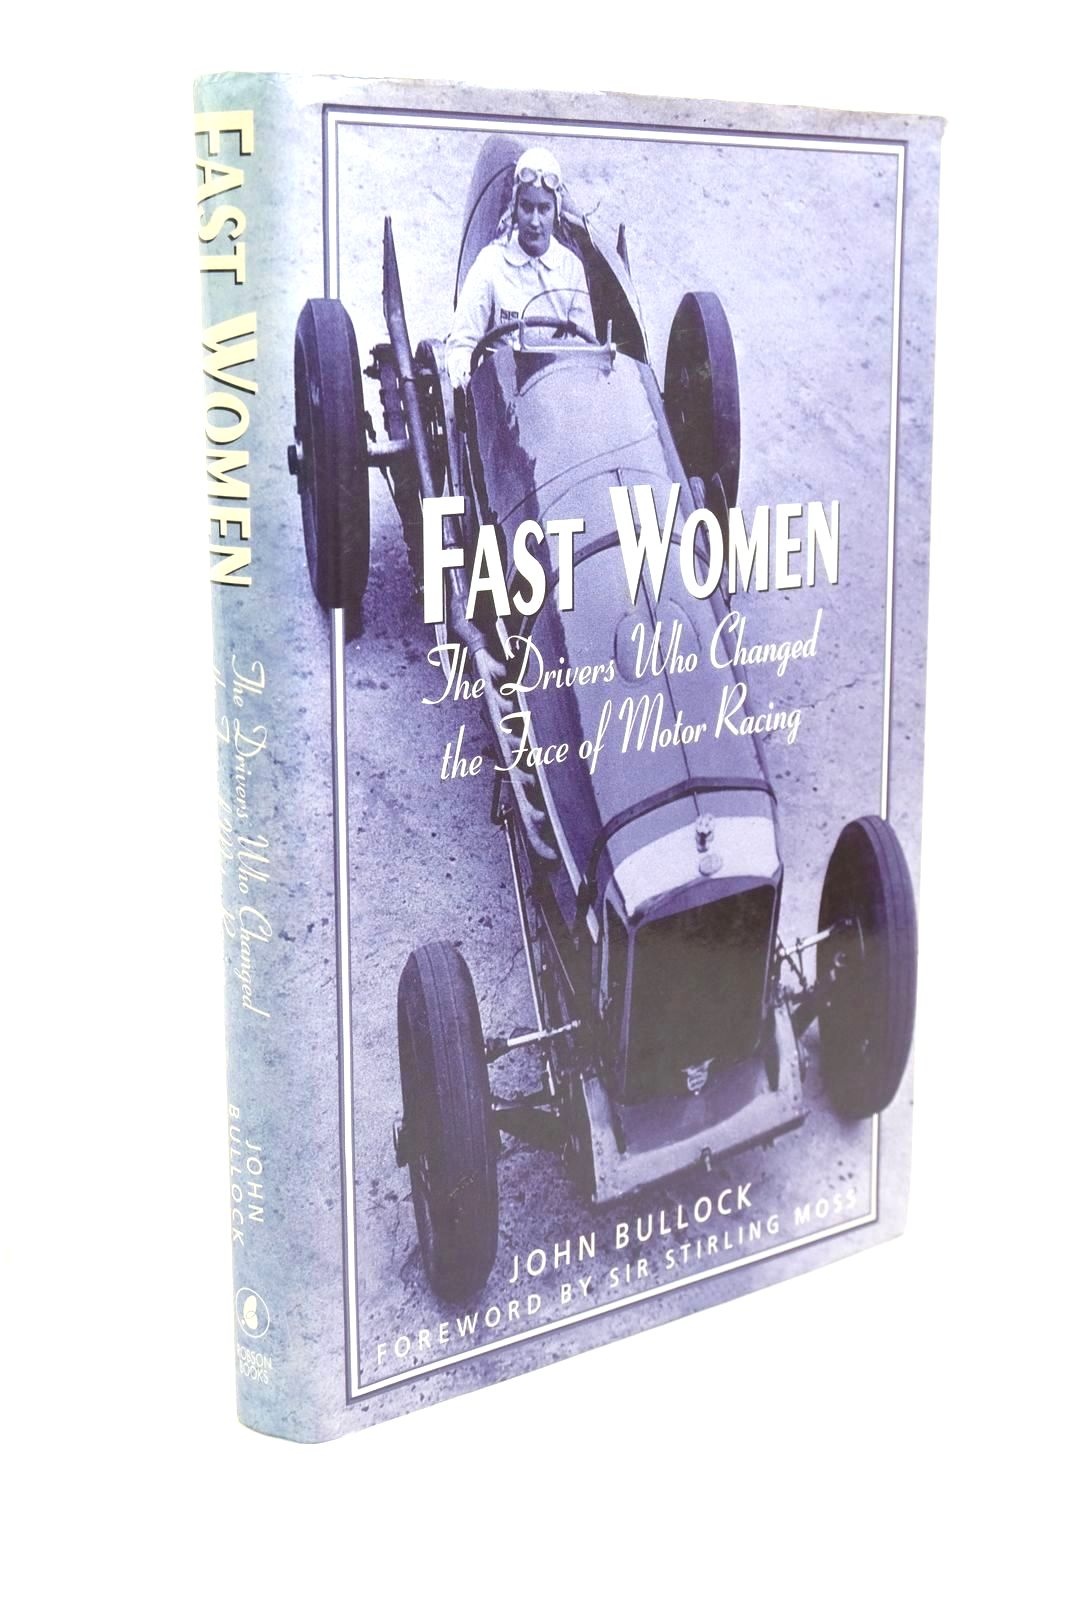 Photo of FAST WOMEN written by Bullock, John published by Robson Books (STOCK CODE: 1321234)  for sale by Stella & Rose's Books